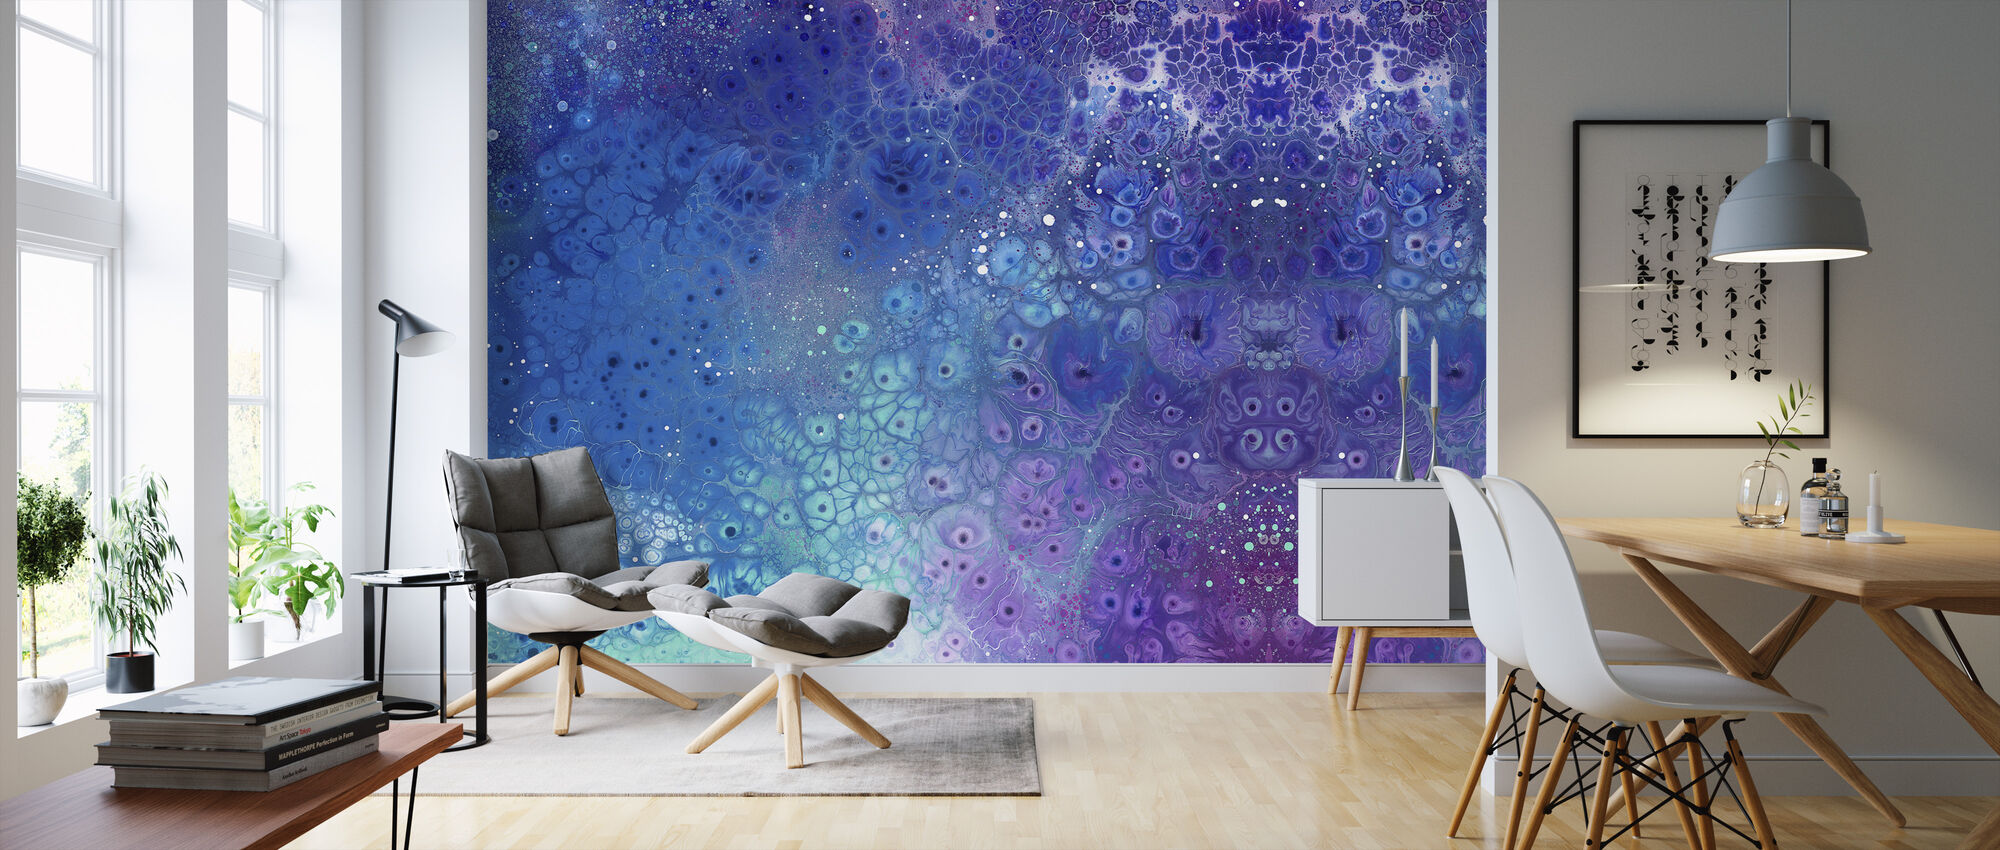 AURA Aquatic - Wallpaper - Living Room